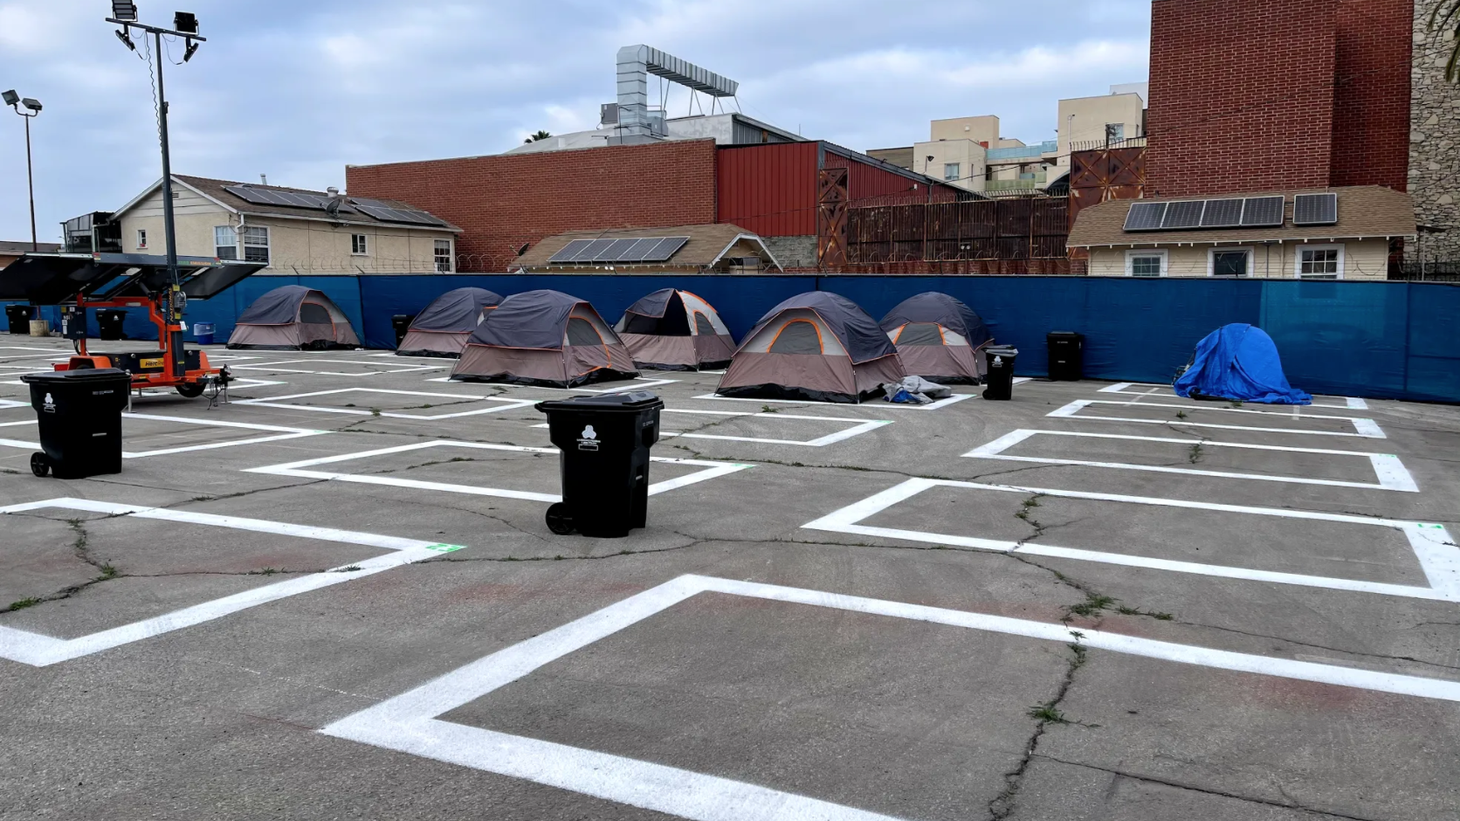 This parking lot on Madison Avenue, off Beverly Boulevard, has been turned into a government-sanctioned homeless encampment that can accommodate about 120 people at a time in 12-foot by 12-foot spots.